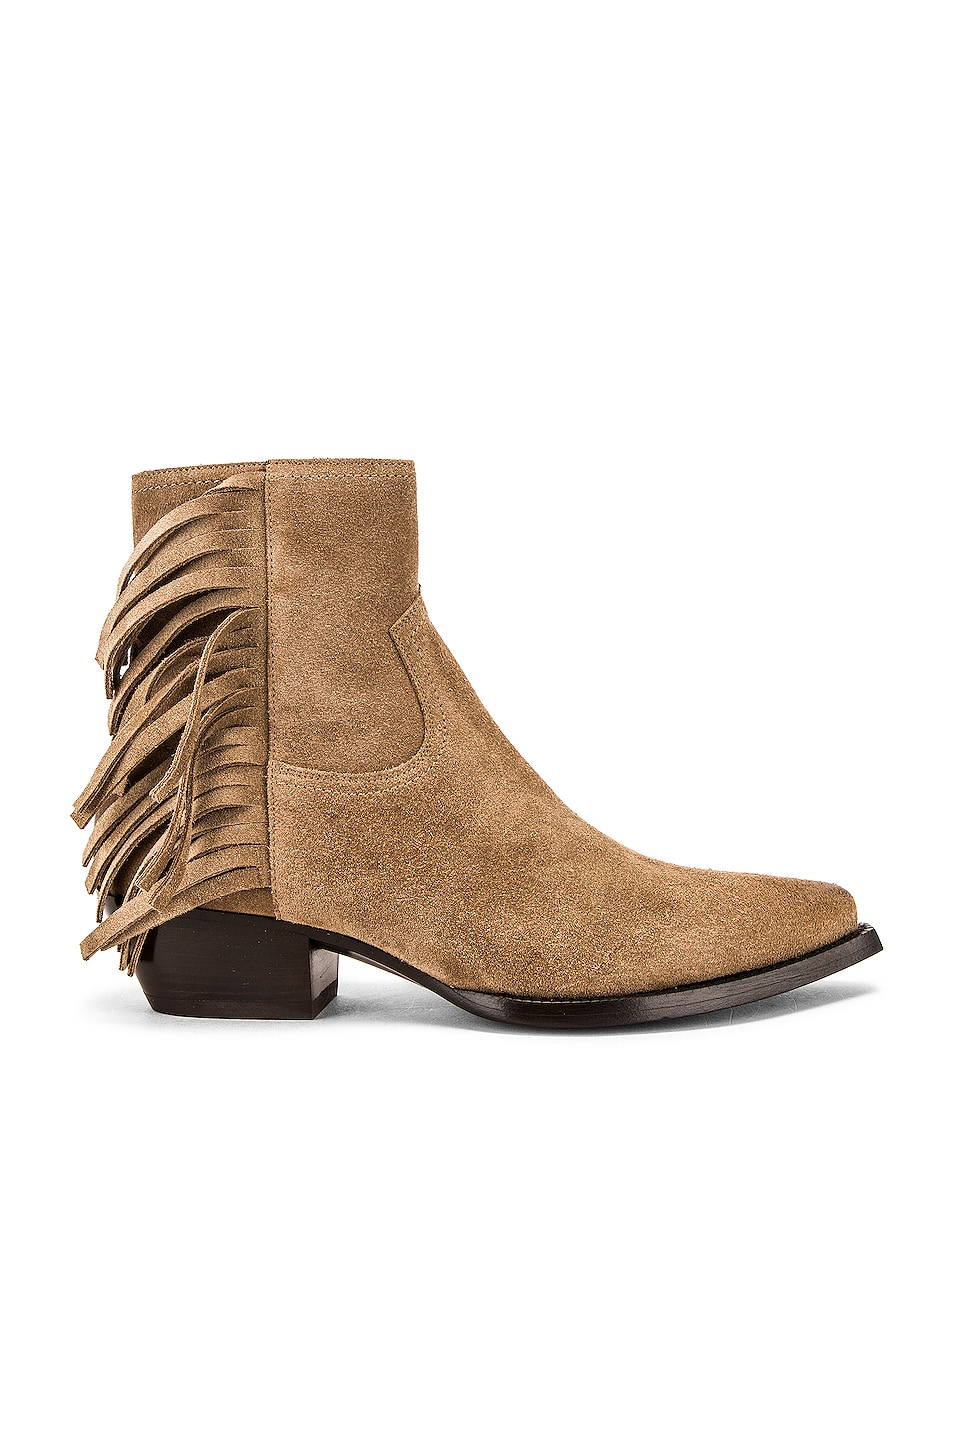 Image 1 of Saint Laurent Lukas Fringe Boots in New Sigaro